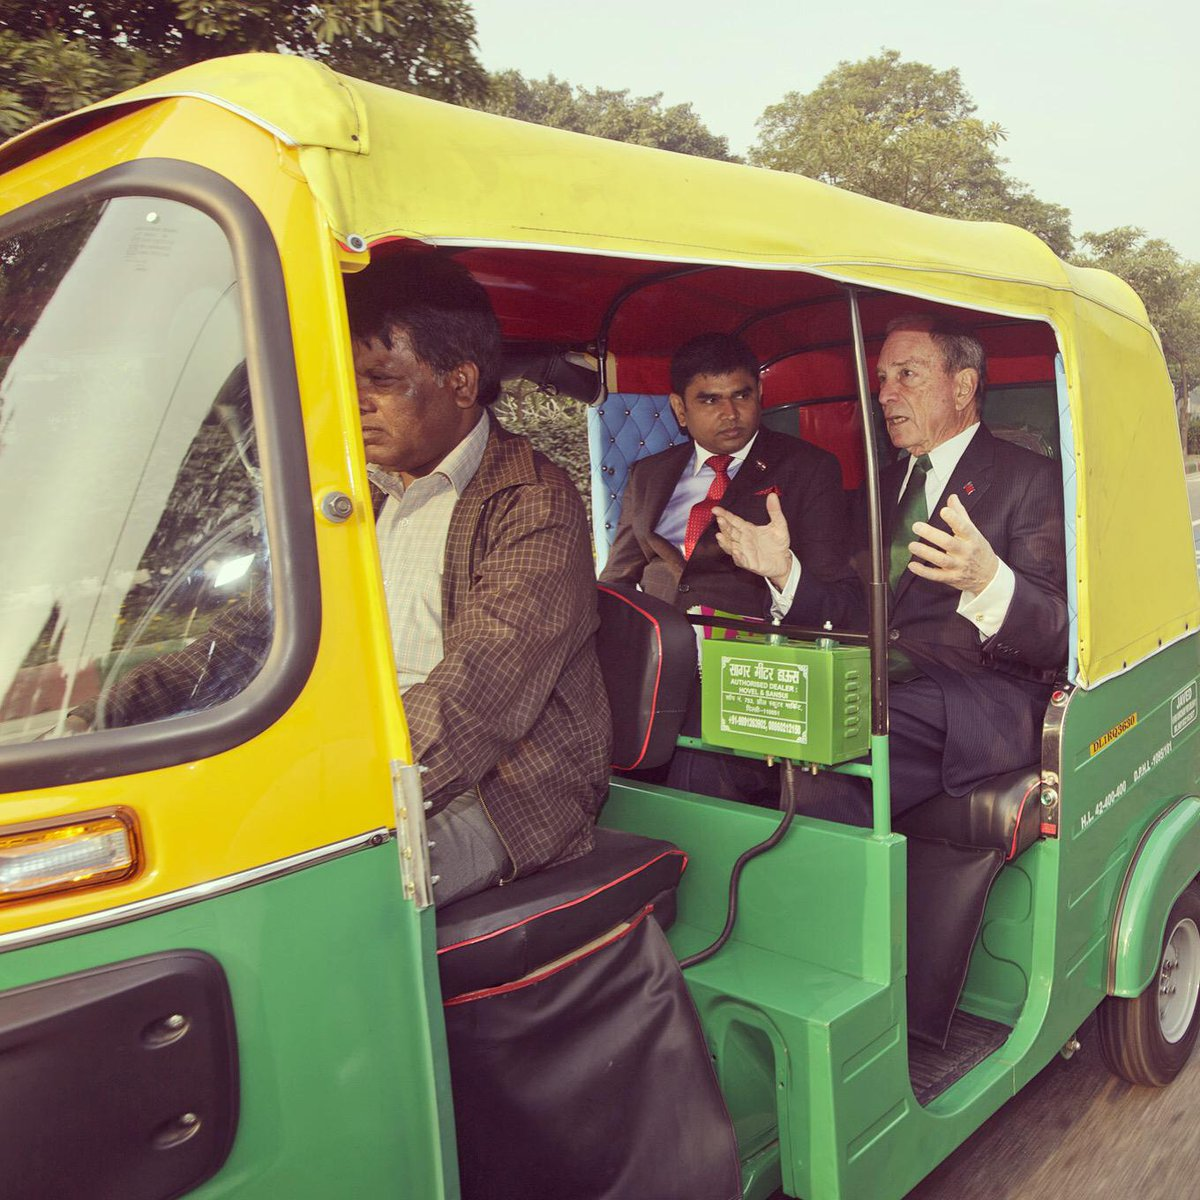 Caught a ride on a CNG rickshaw in New Delhi - reminded me of NYC taxis: yellow & green, & fast. (Sometimes too fast) http://t.co/DZ535viDKD